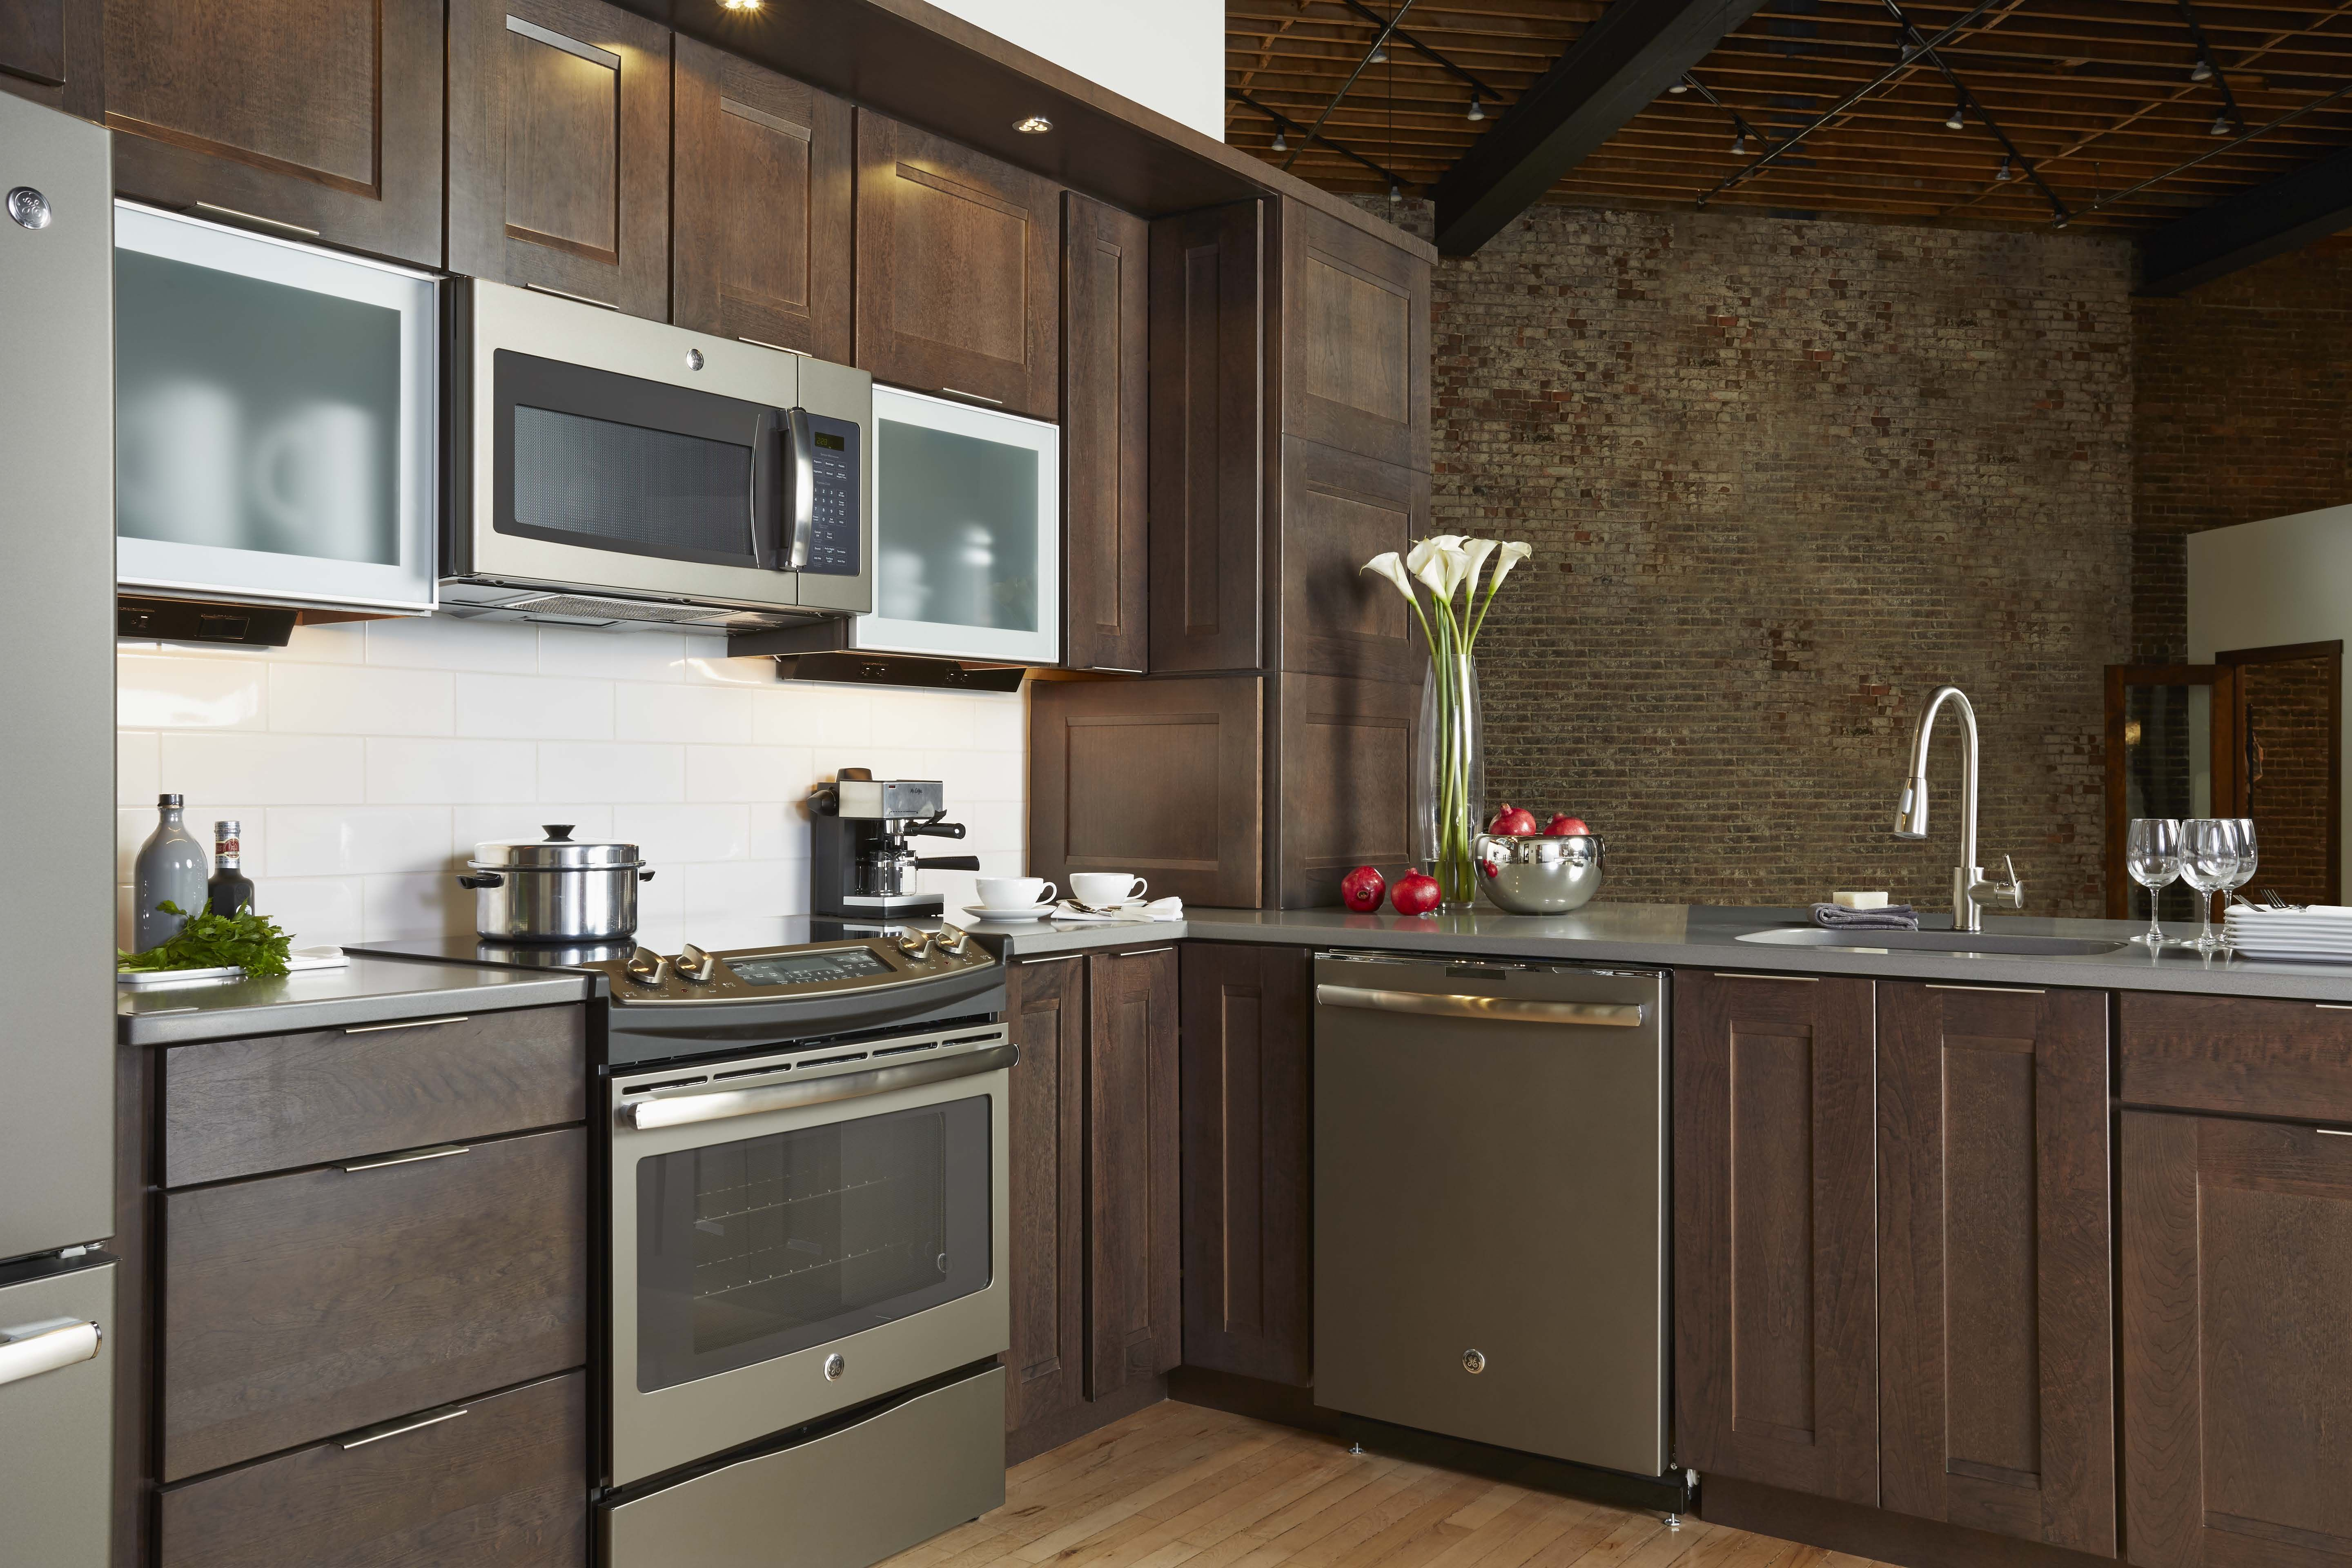 Cherry Kitchen Cabinet Doors Stainless Steel Appliances Meet Aluminum Cabinet Doors For